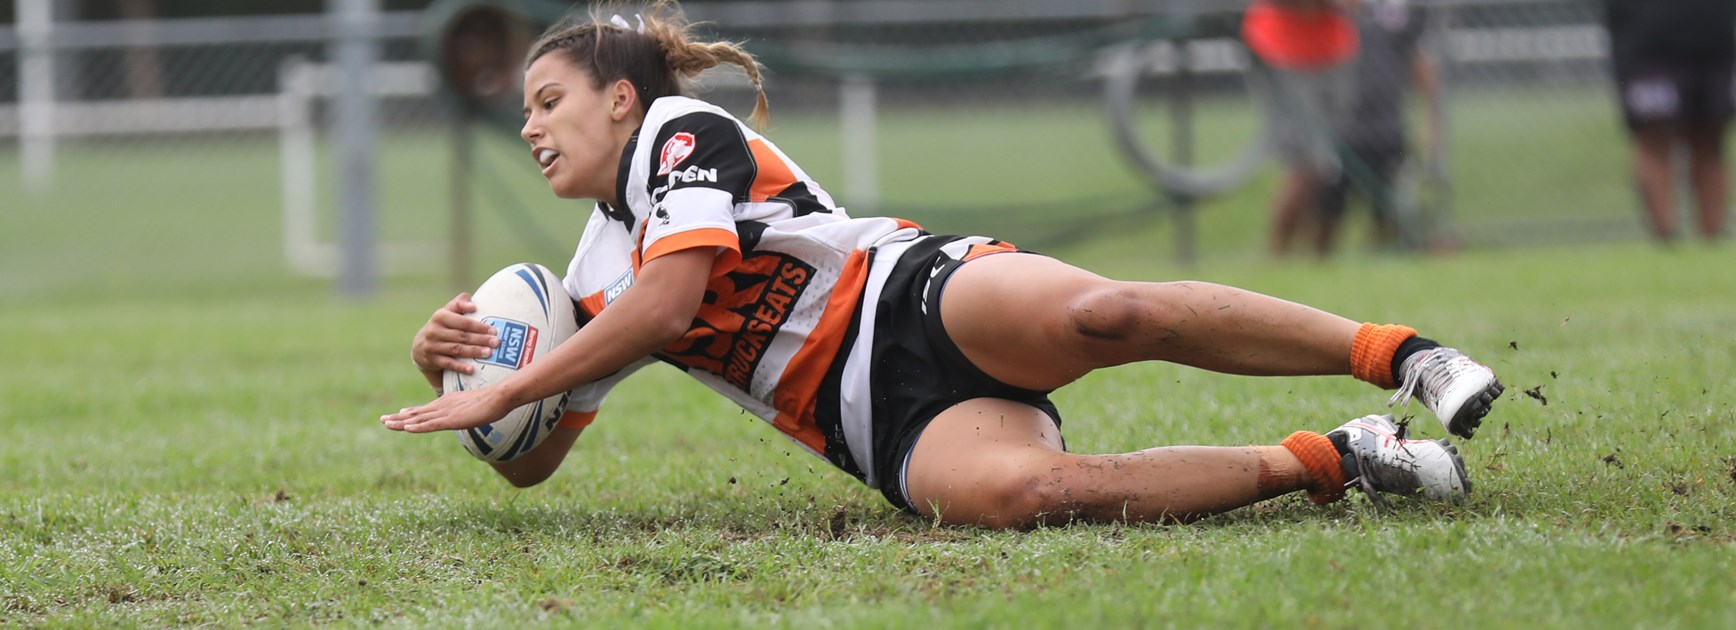 Wests Tigers bow out in Grand Final qualifier